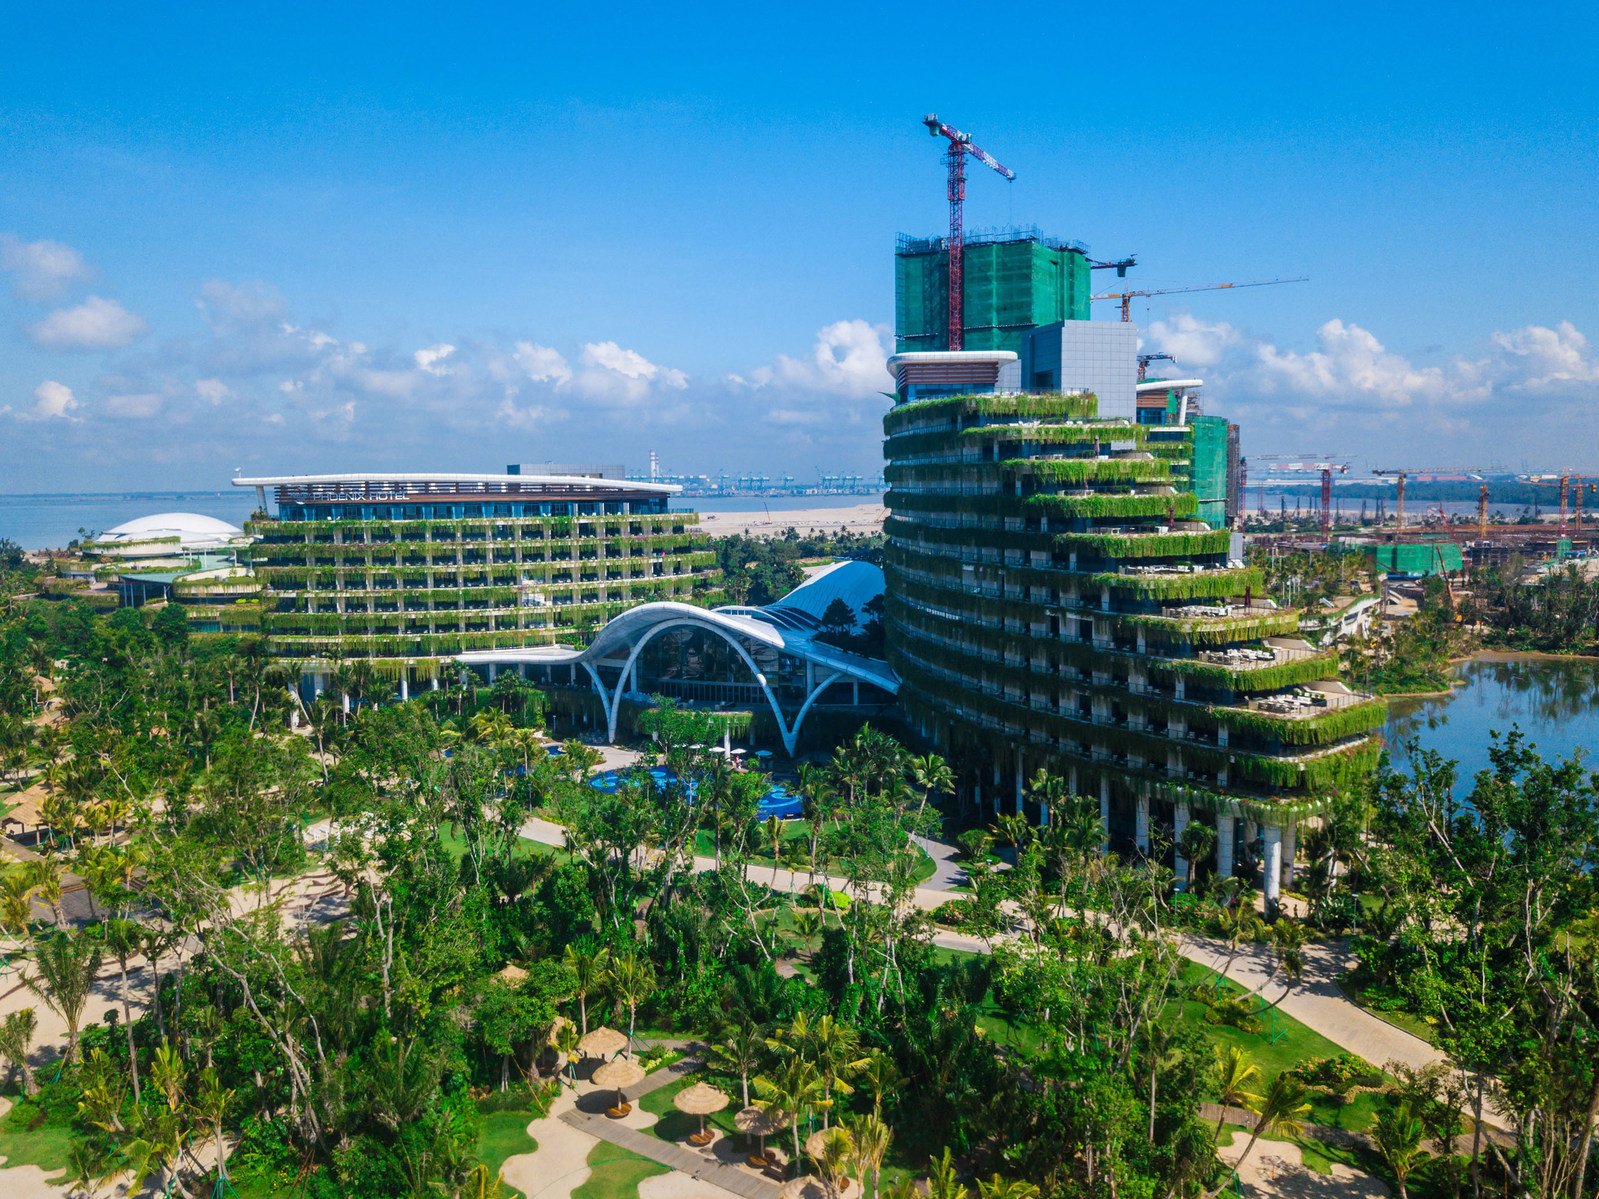 View of Country Garden Forest City presented at the Fortune Global Forum